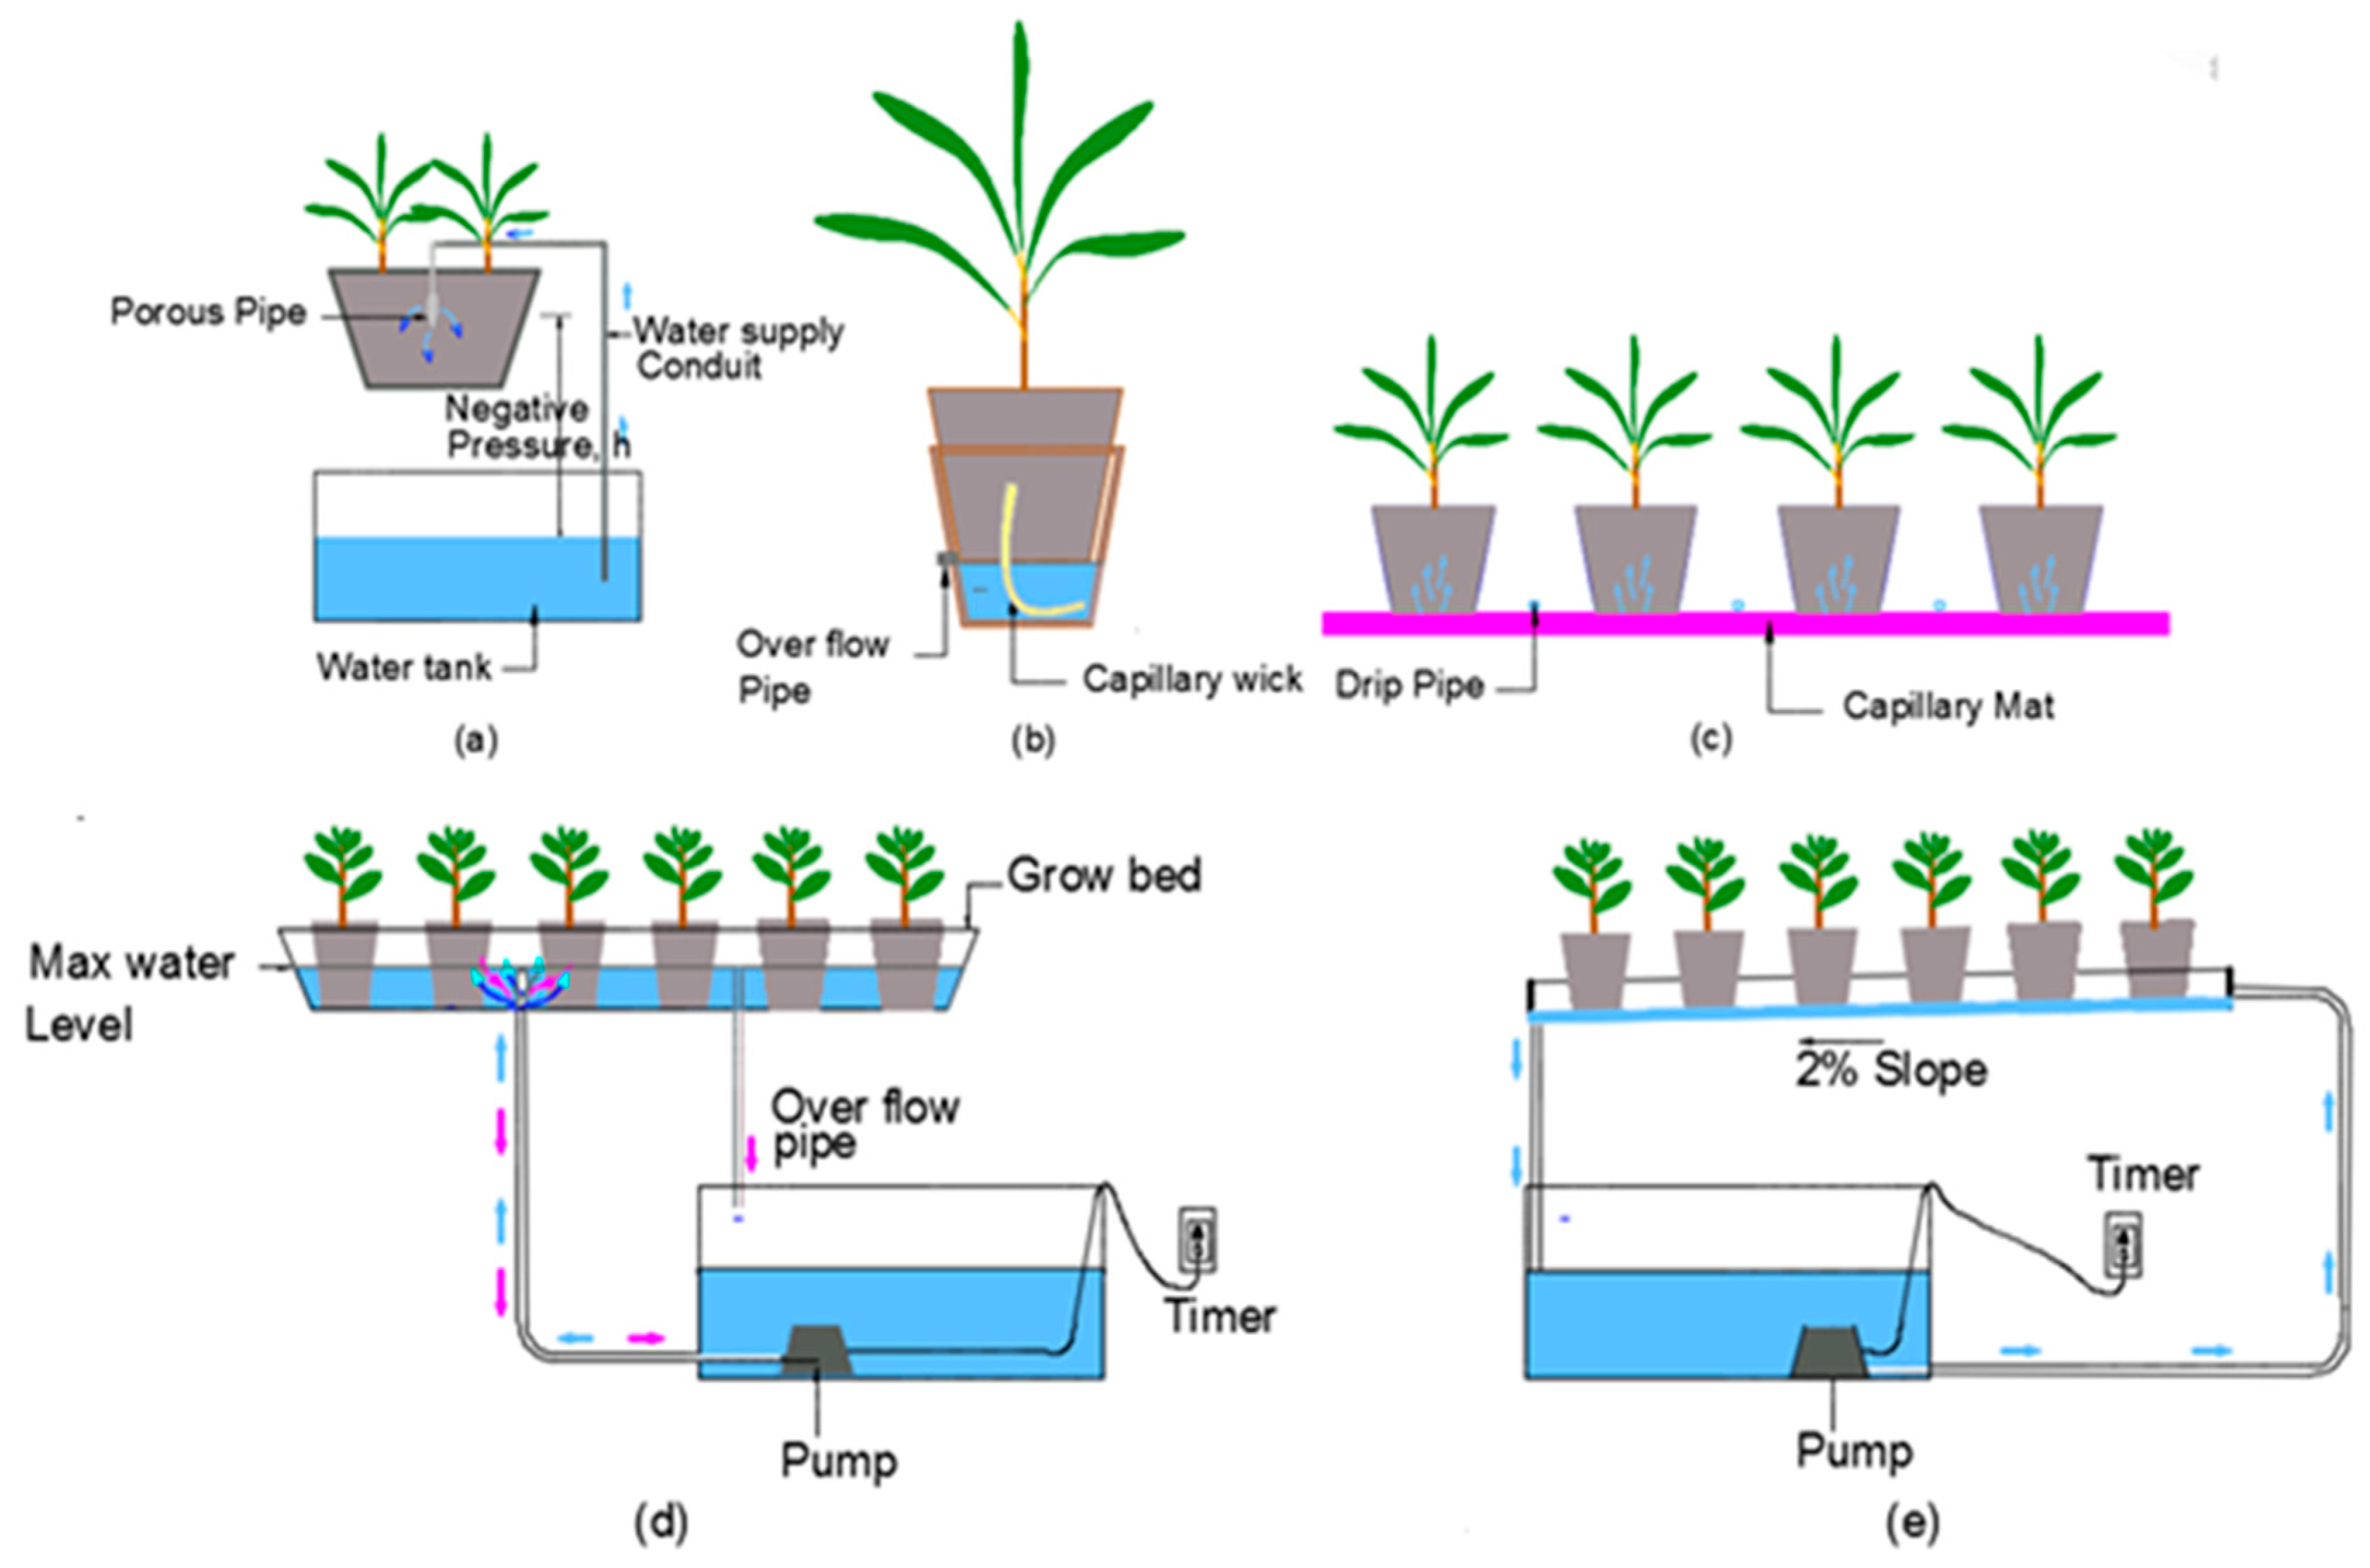 Horticulturae Free Full Text A Semi Systematic Review Of Capillary Irrigation The Benefits Limitations And Opportunities Html